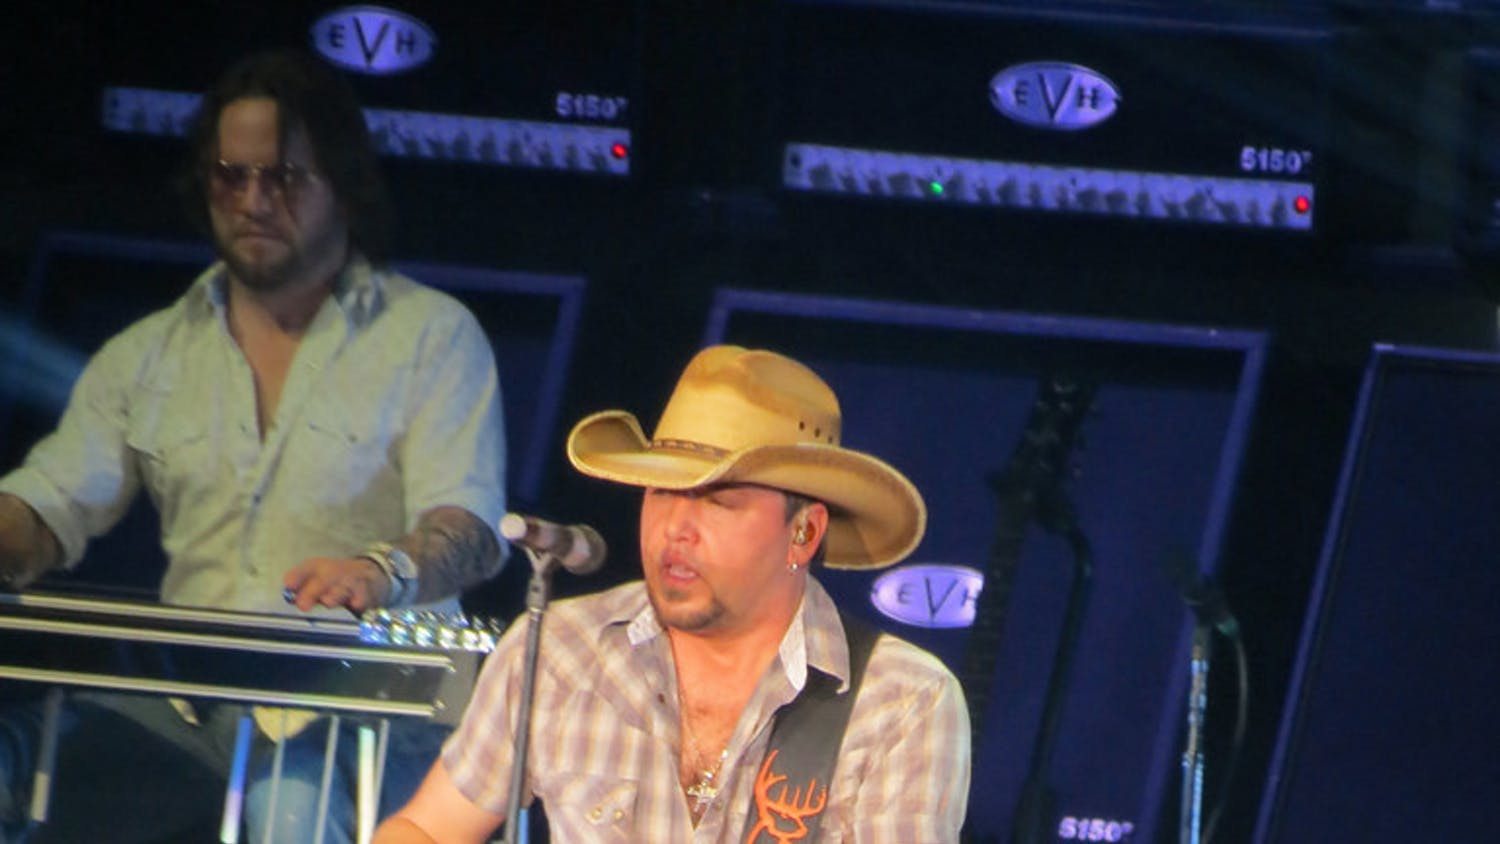 PREVIEW: Jason Aldean to release an album dedicated to Macon